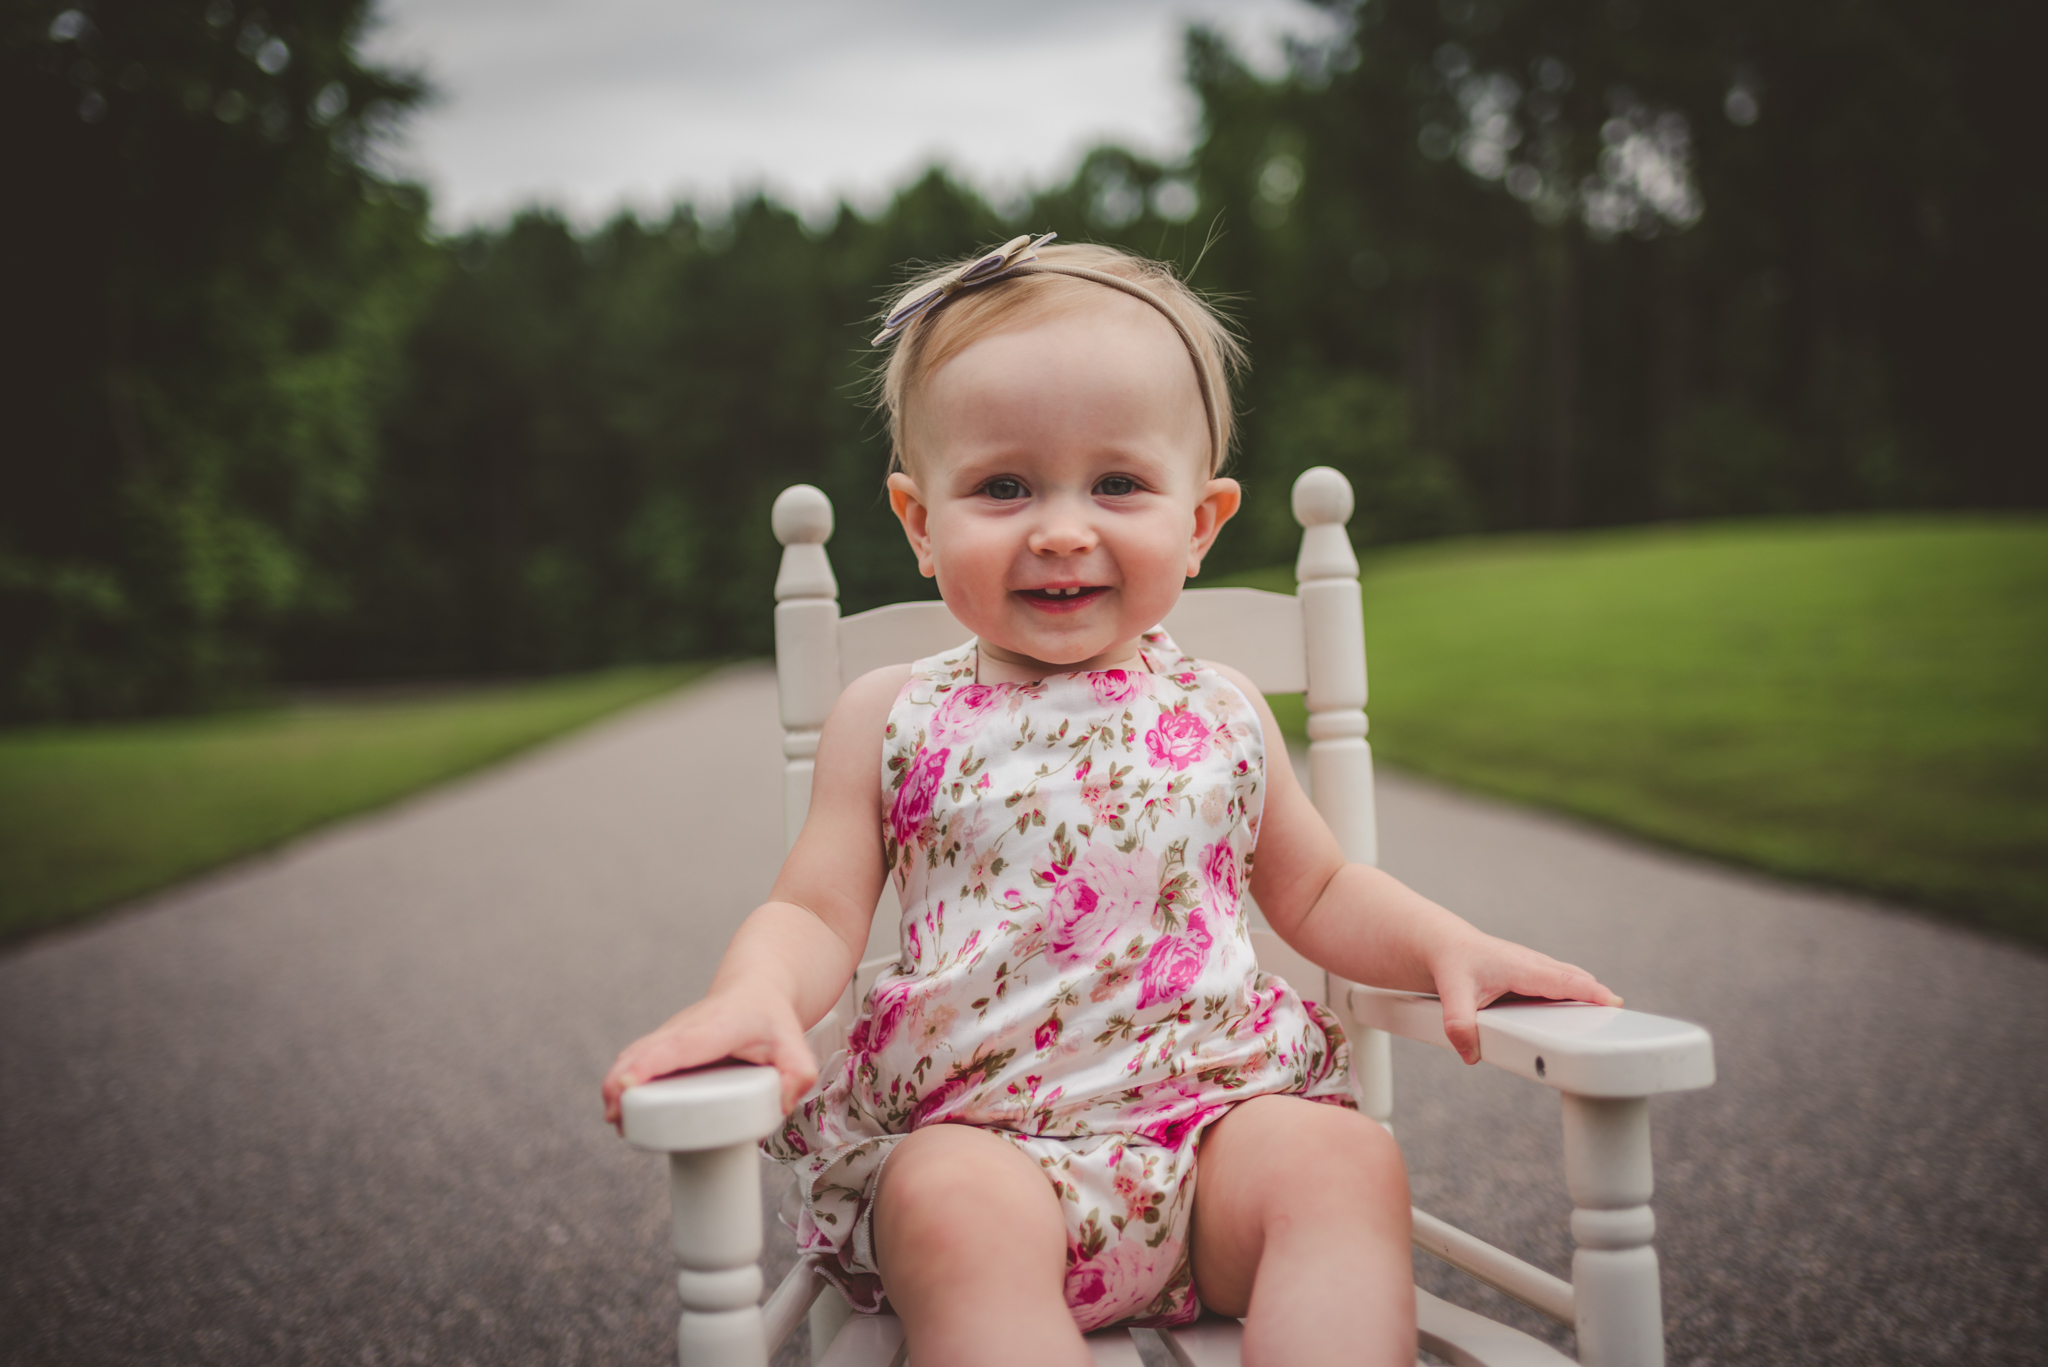 This little girl is sitting in an old rocking chair for her first birthday in Rolesville, North Carolina, image taken by Rose Trail Images.